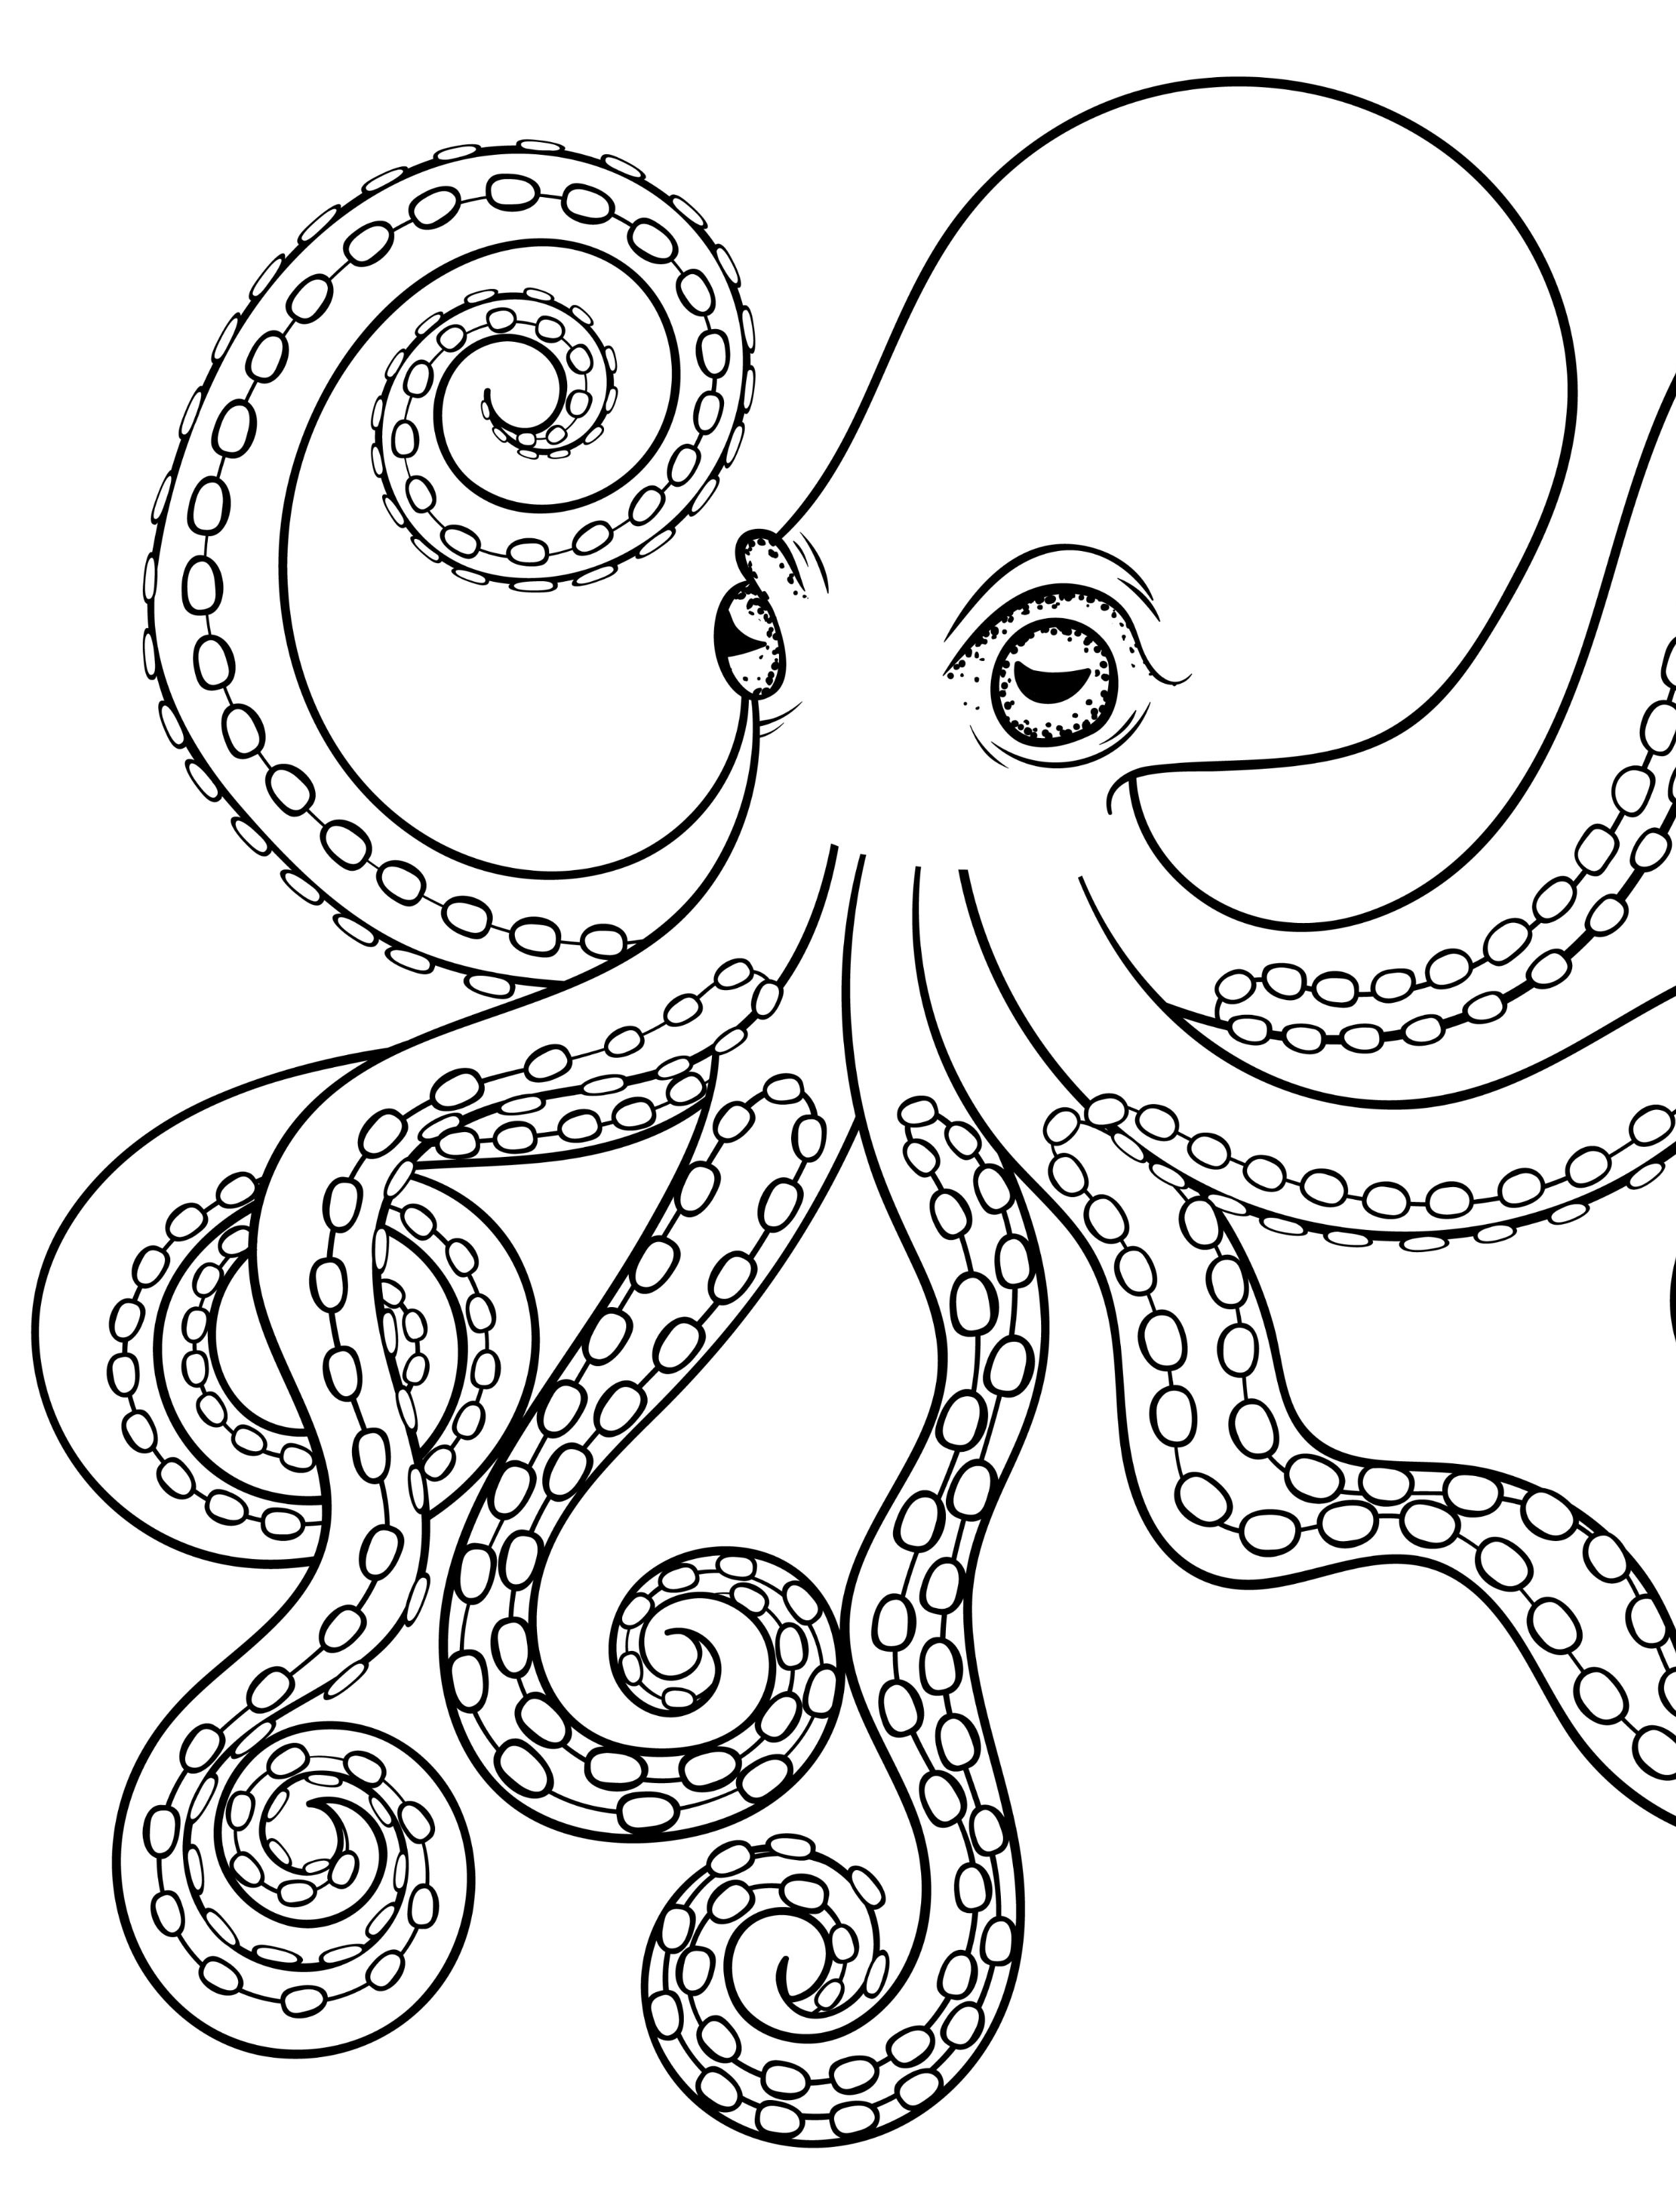 colouring picture of octopus get this free octopus coloring pages 9tf1q of octopus colouring picture